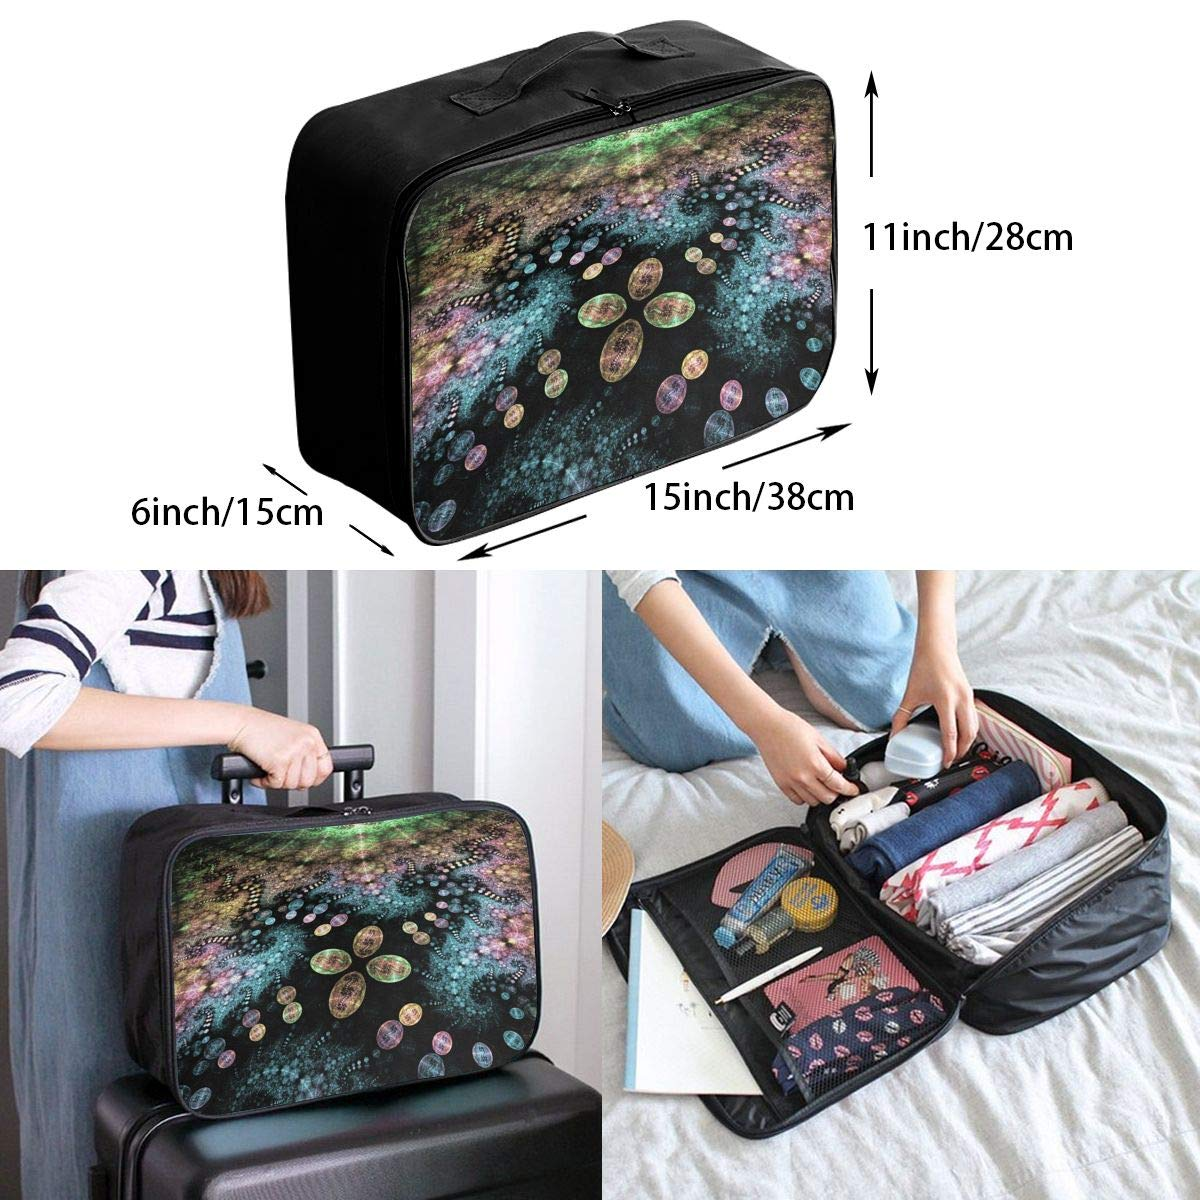 Travel Luggage Duffle Bag Lightweight Portable Handbag Egg Art Large Capacity Waterproof Foldable Storage Tote